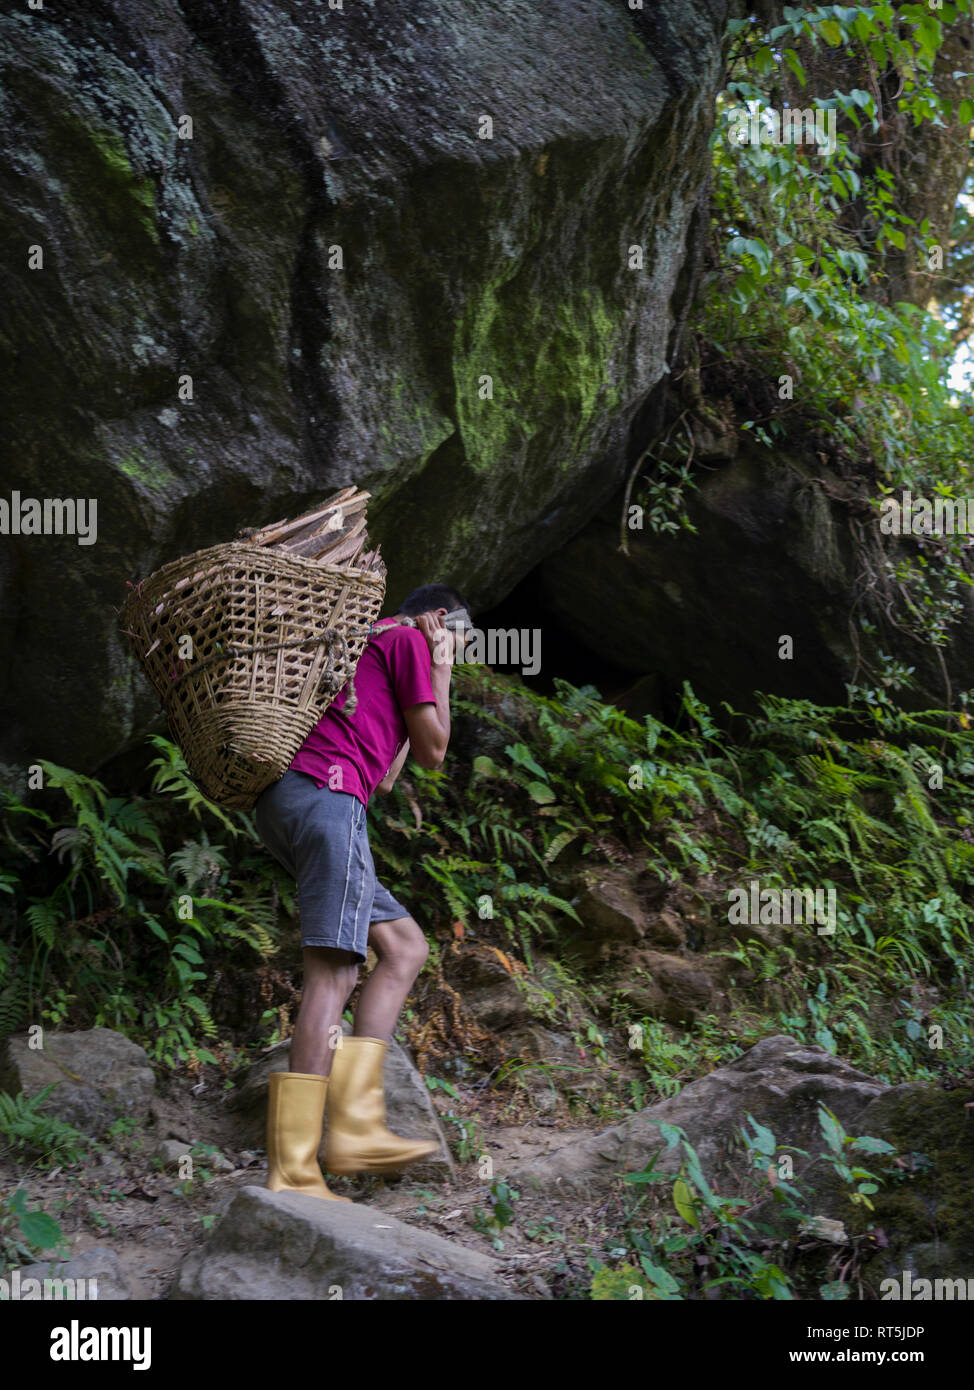 Side Sikkim Stock Photos & Side Sikkim Stock Images - Alamy